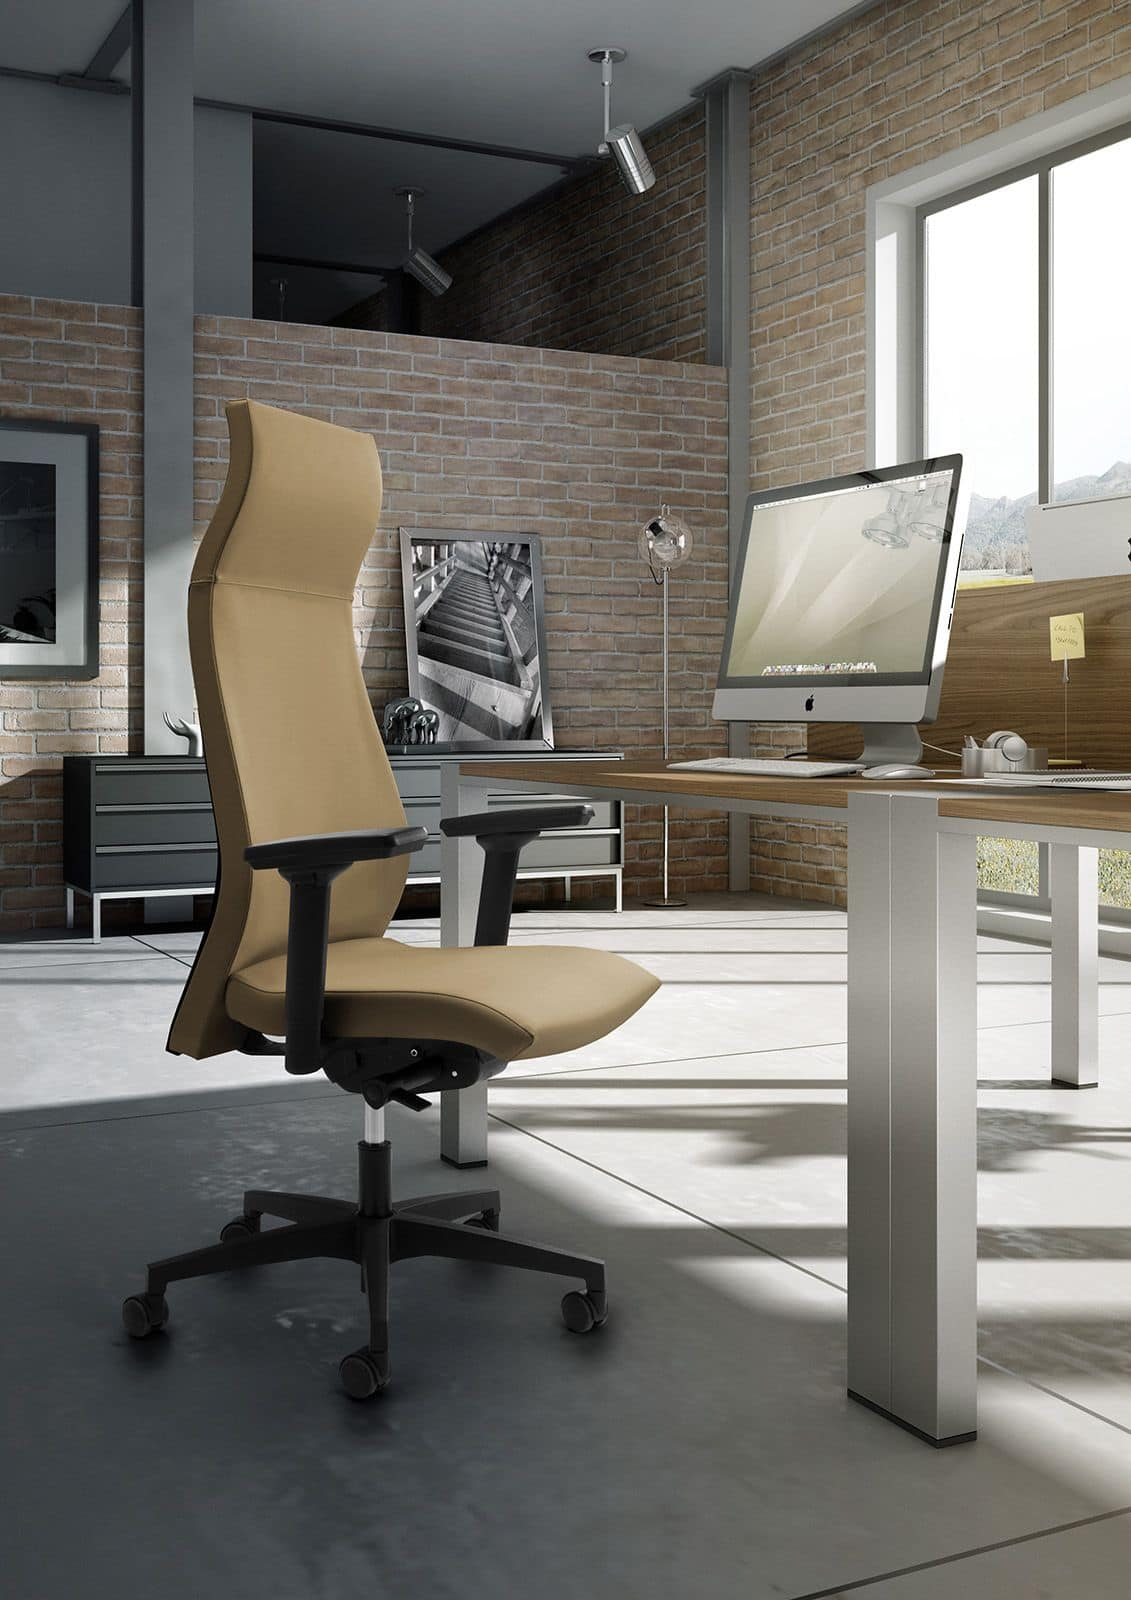 Energy 80012N, Office chair with tall backrest and headrest